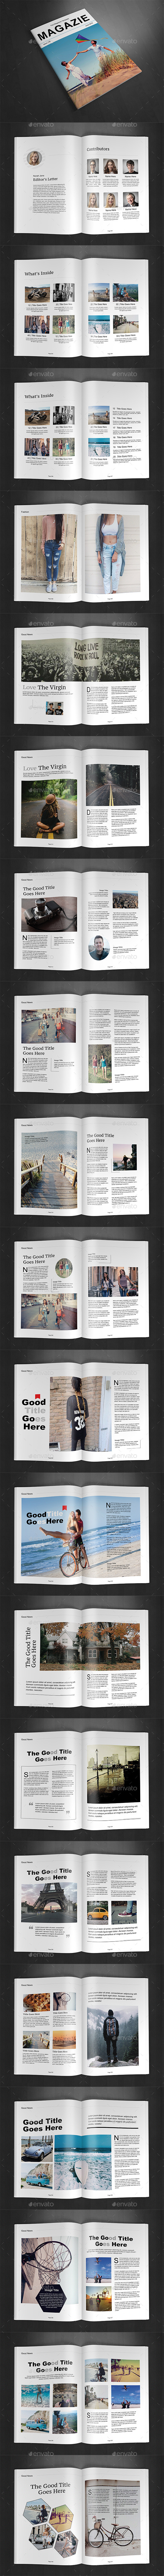 GraphicRiver A4 Magazine Template Vol.15 11895646